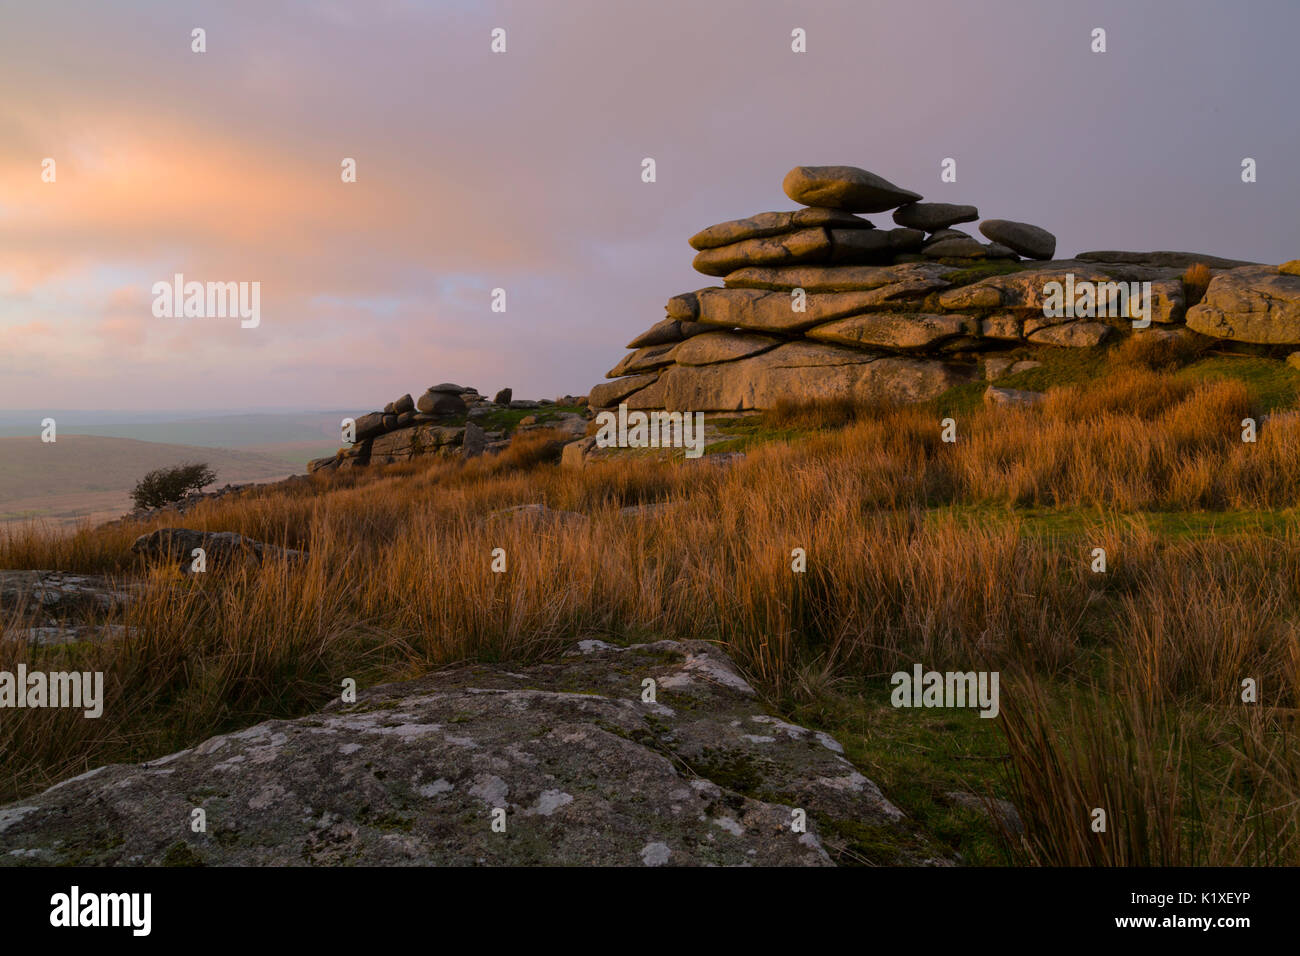 Sunset falling across Stowes Hill on Bodmin Moor - Stock Image